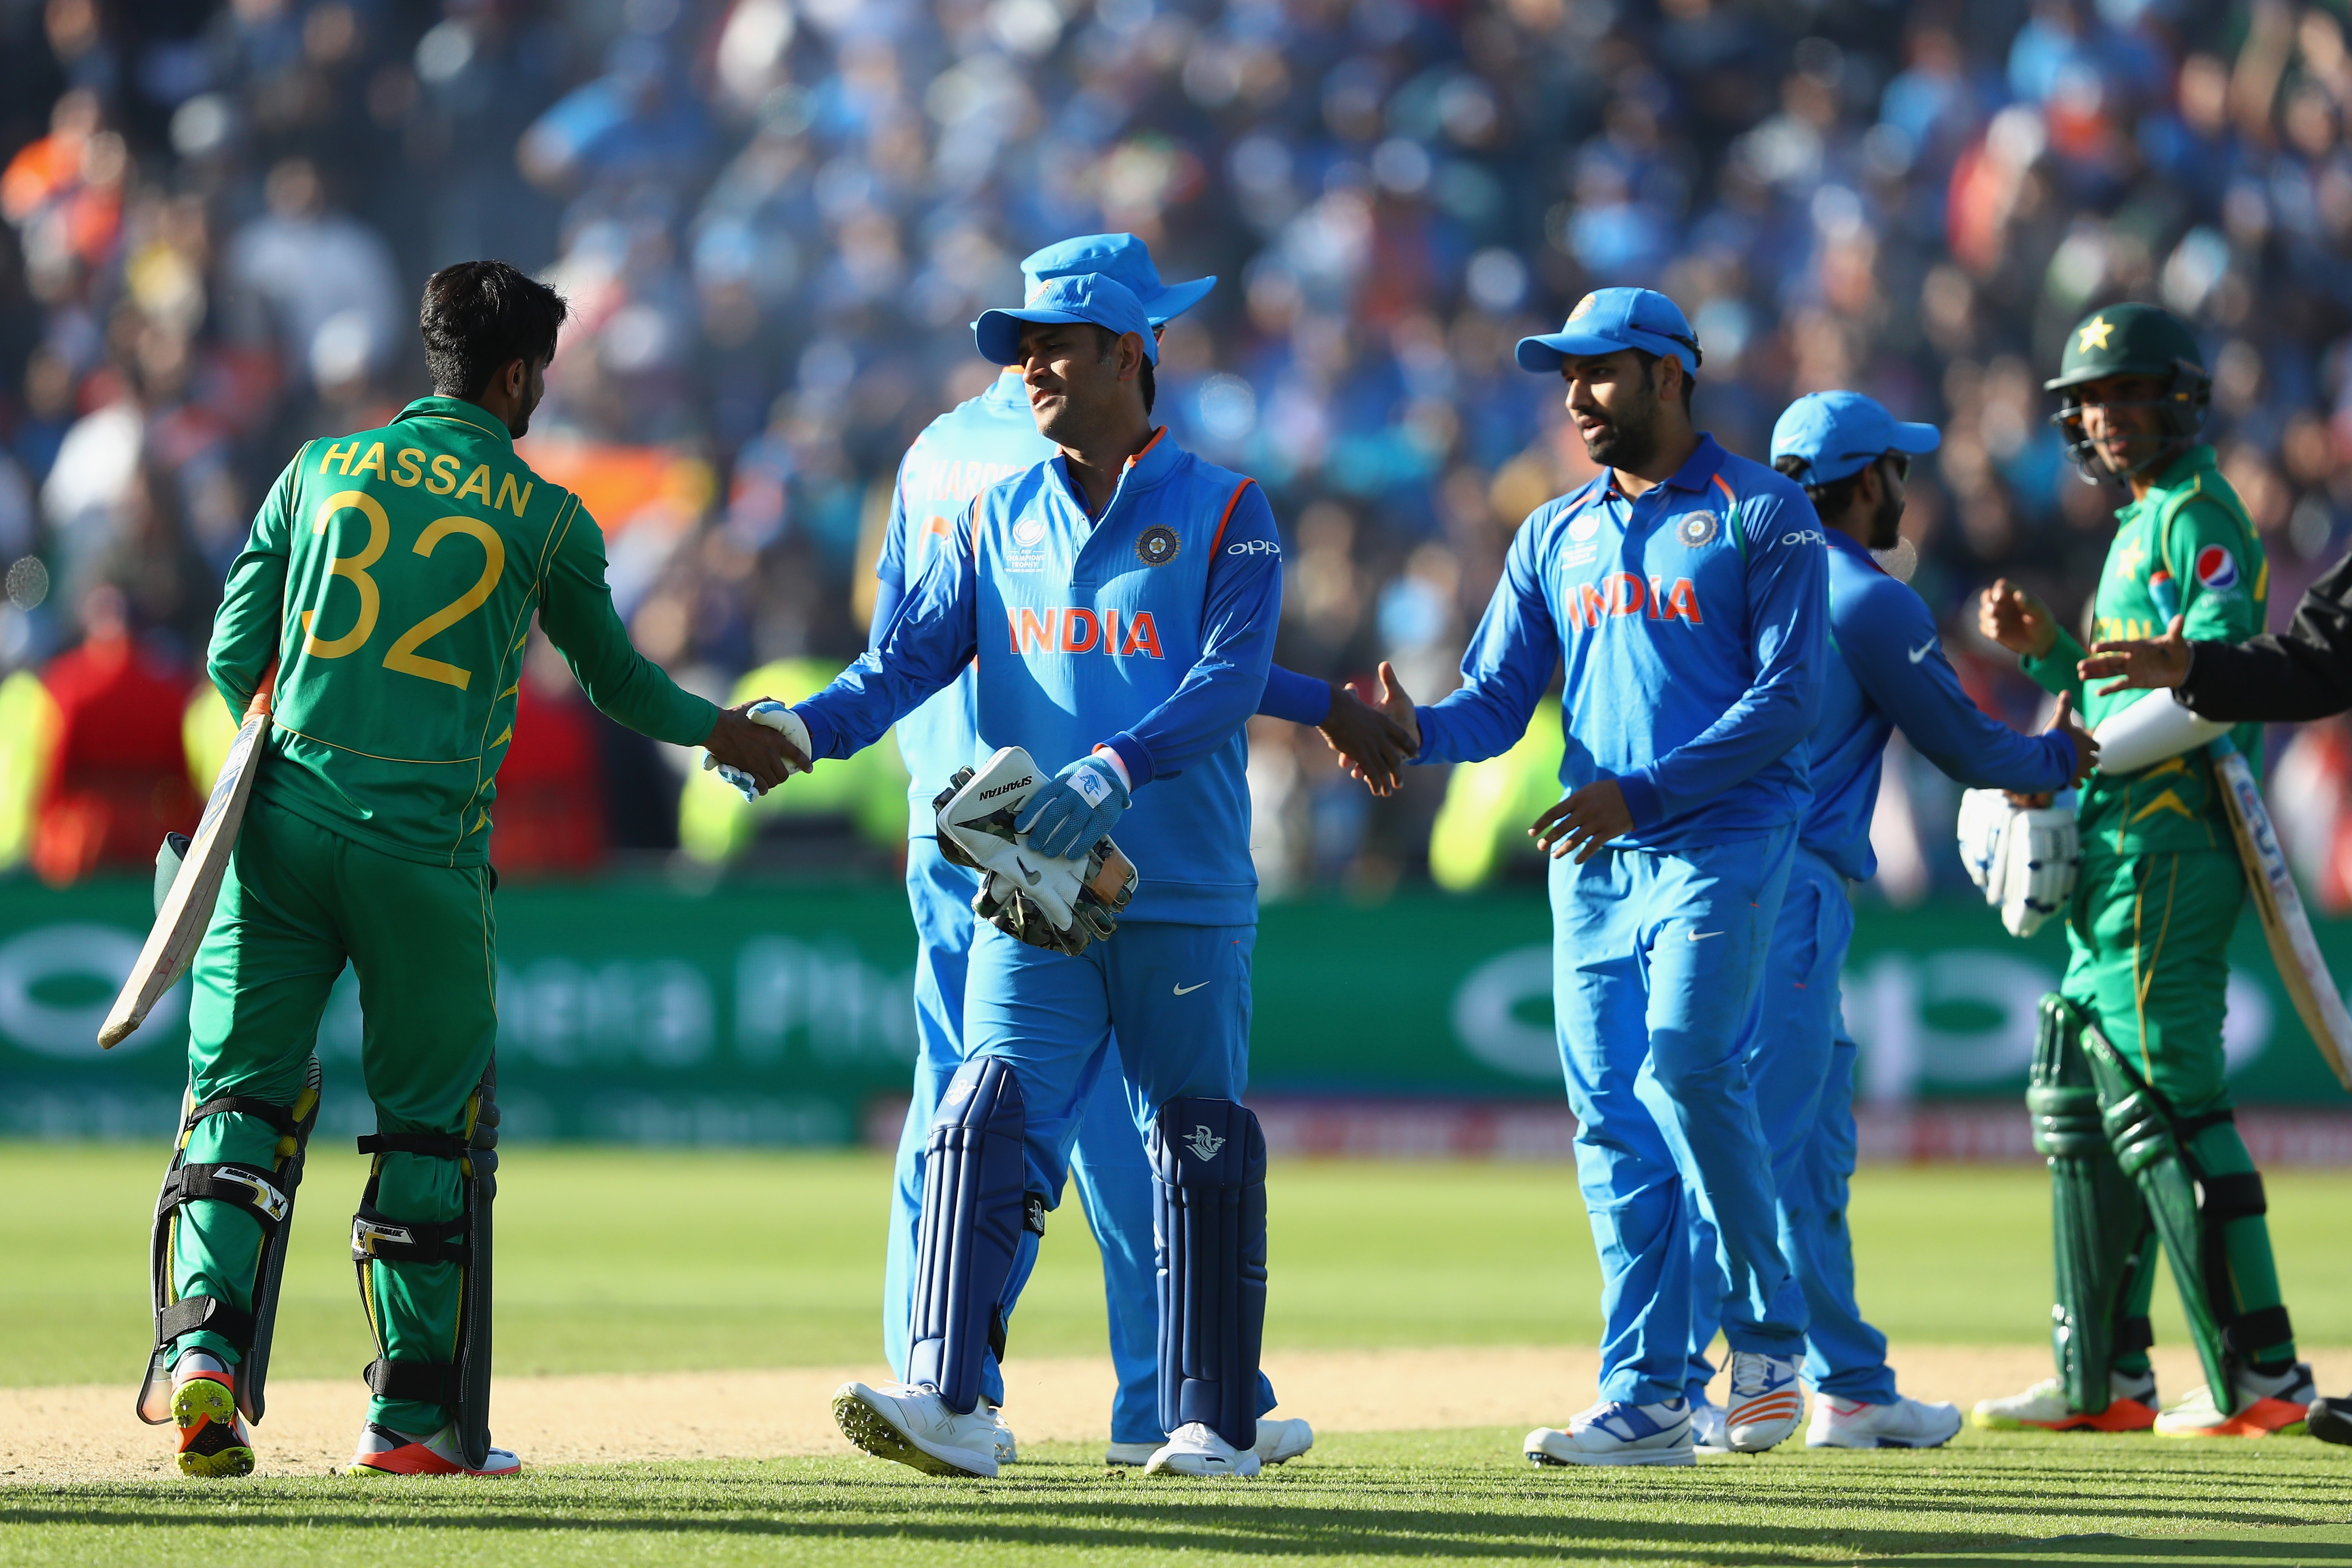 India and Pakistan have played each other in Champions Trophy last time | Getty